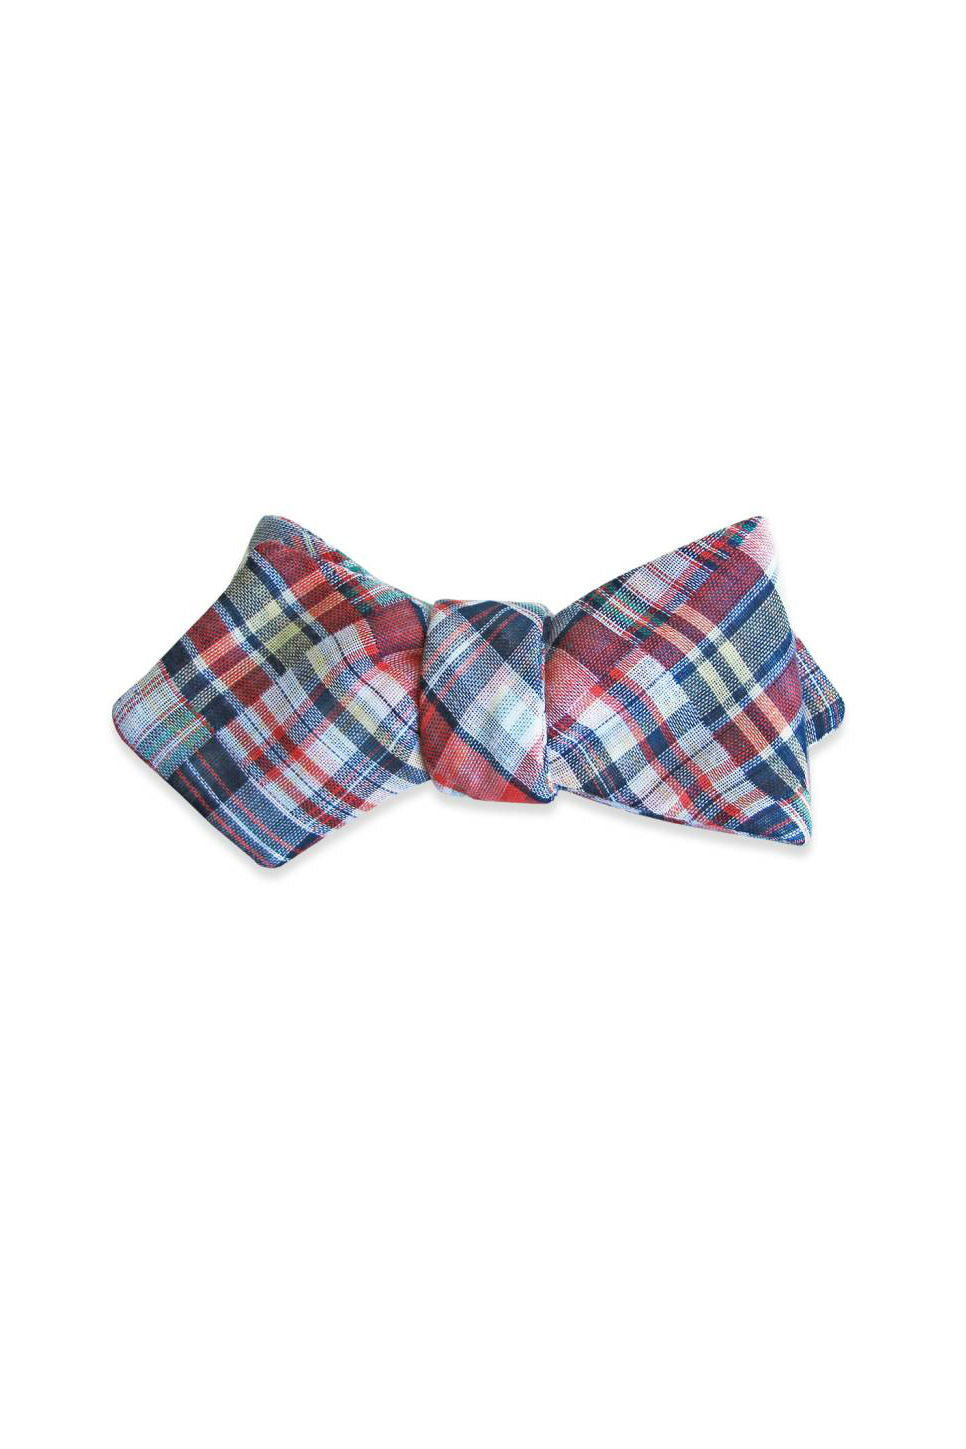 THE MADRAS BOW TIE Blue/Red